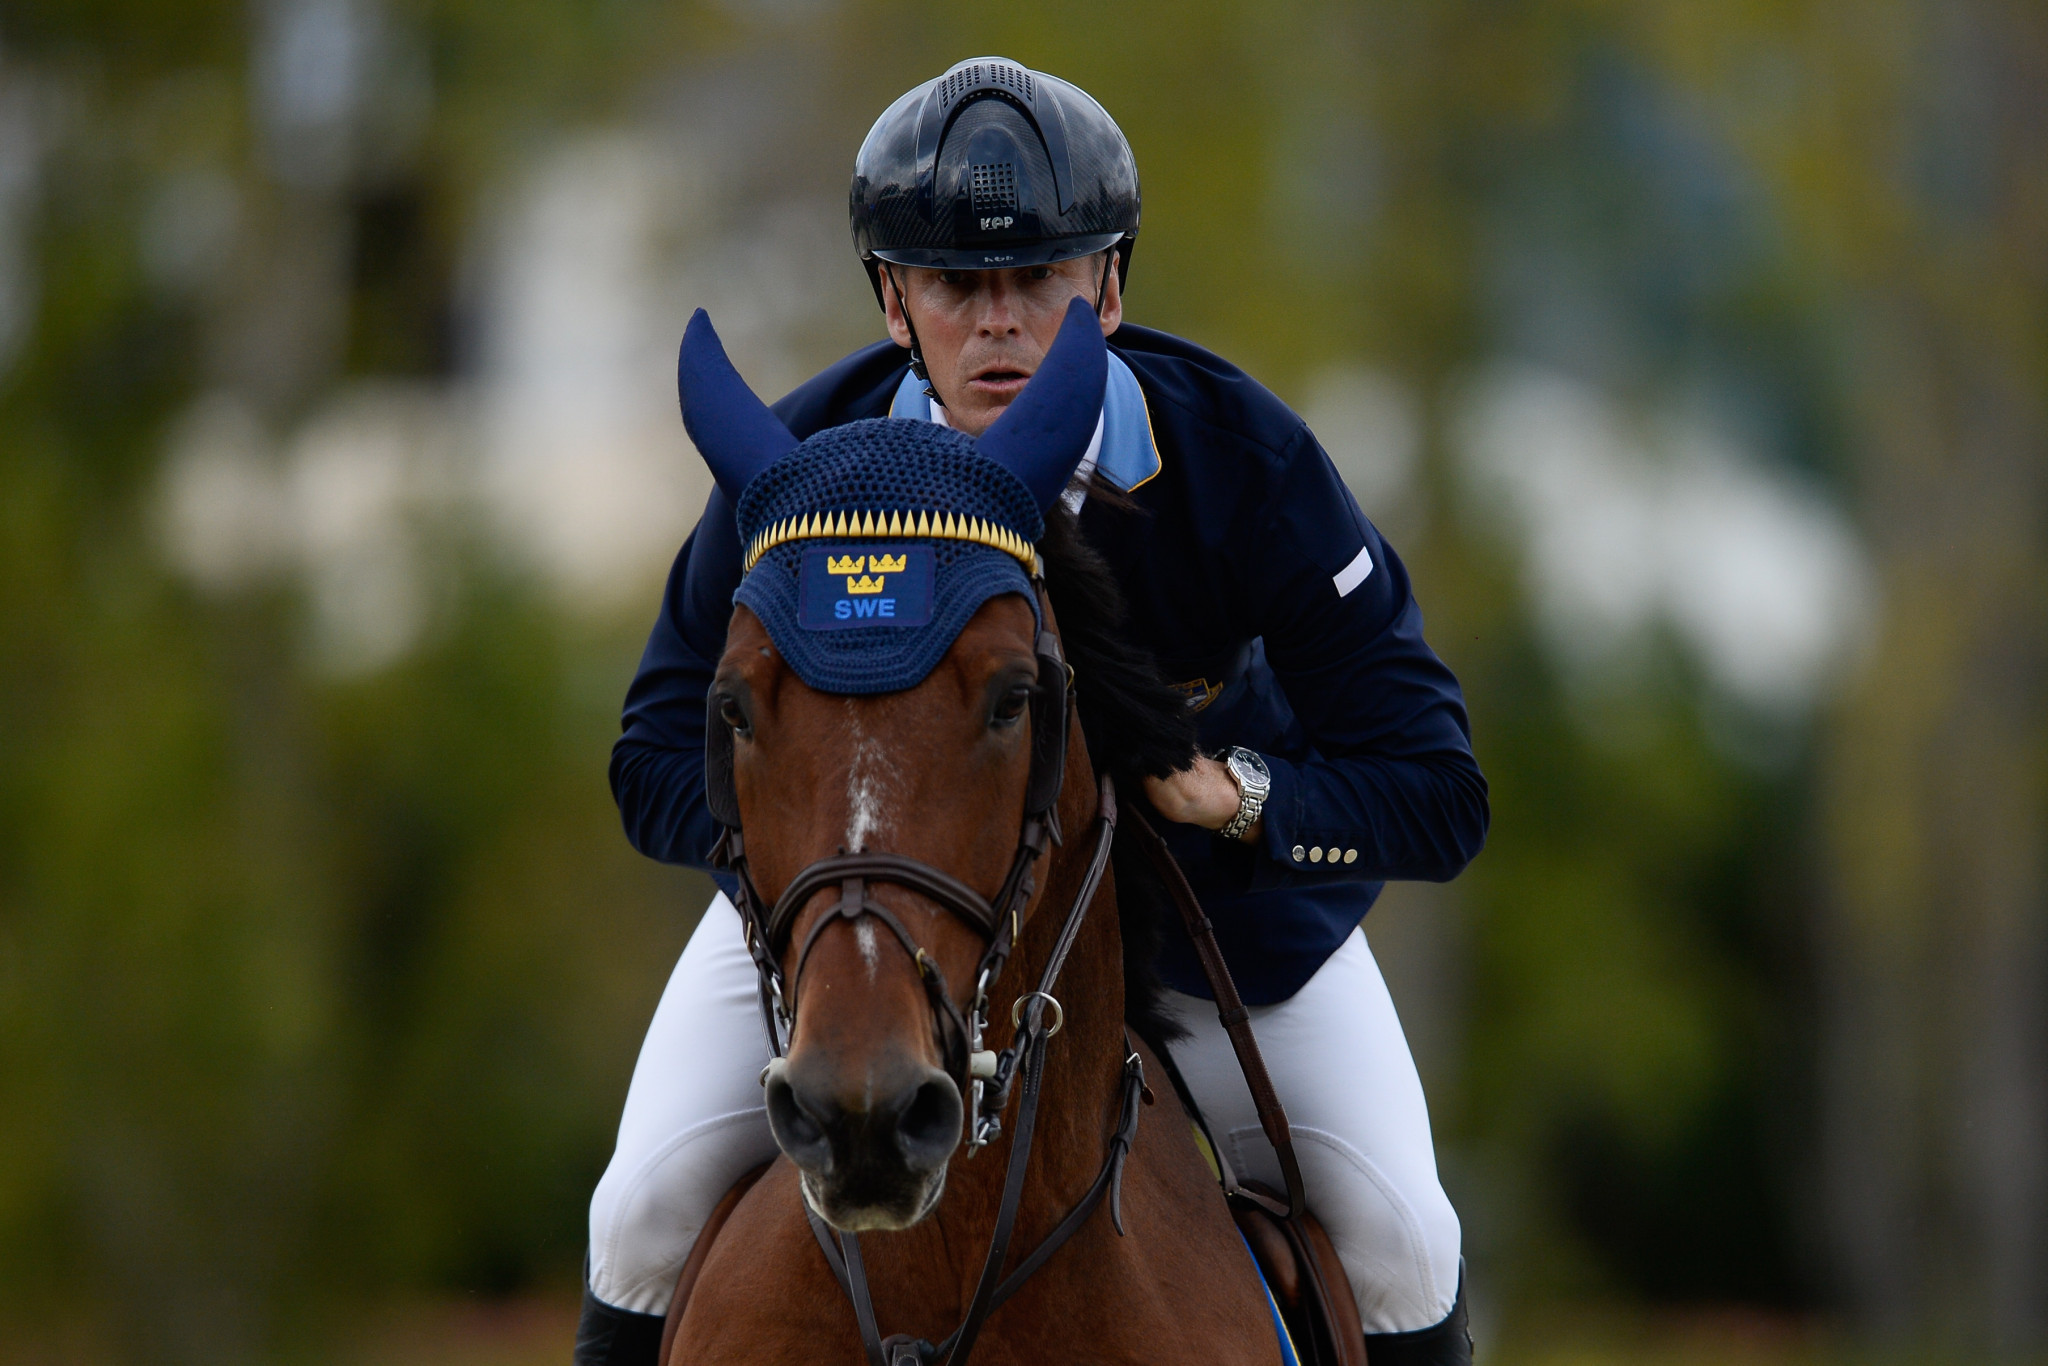 Fredricson seeking home success in Stockholm to maintain Global Champions Tour lead